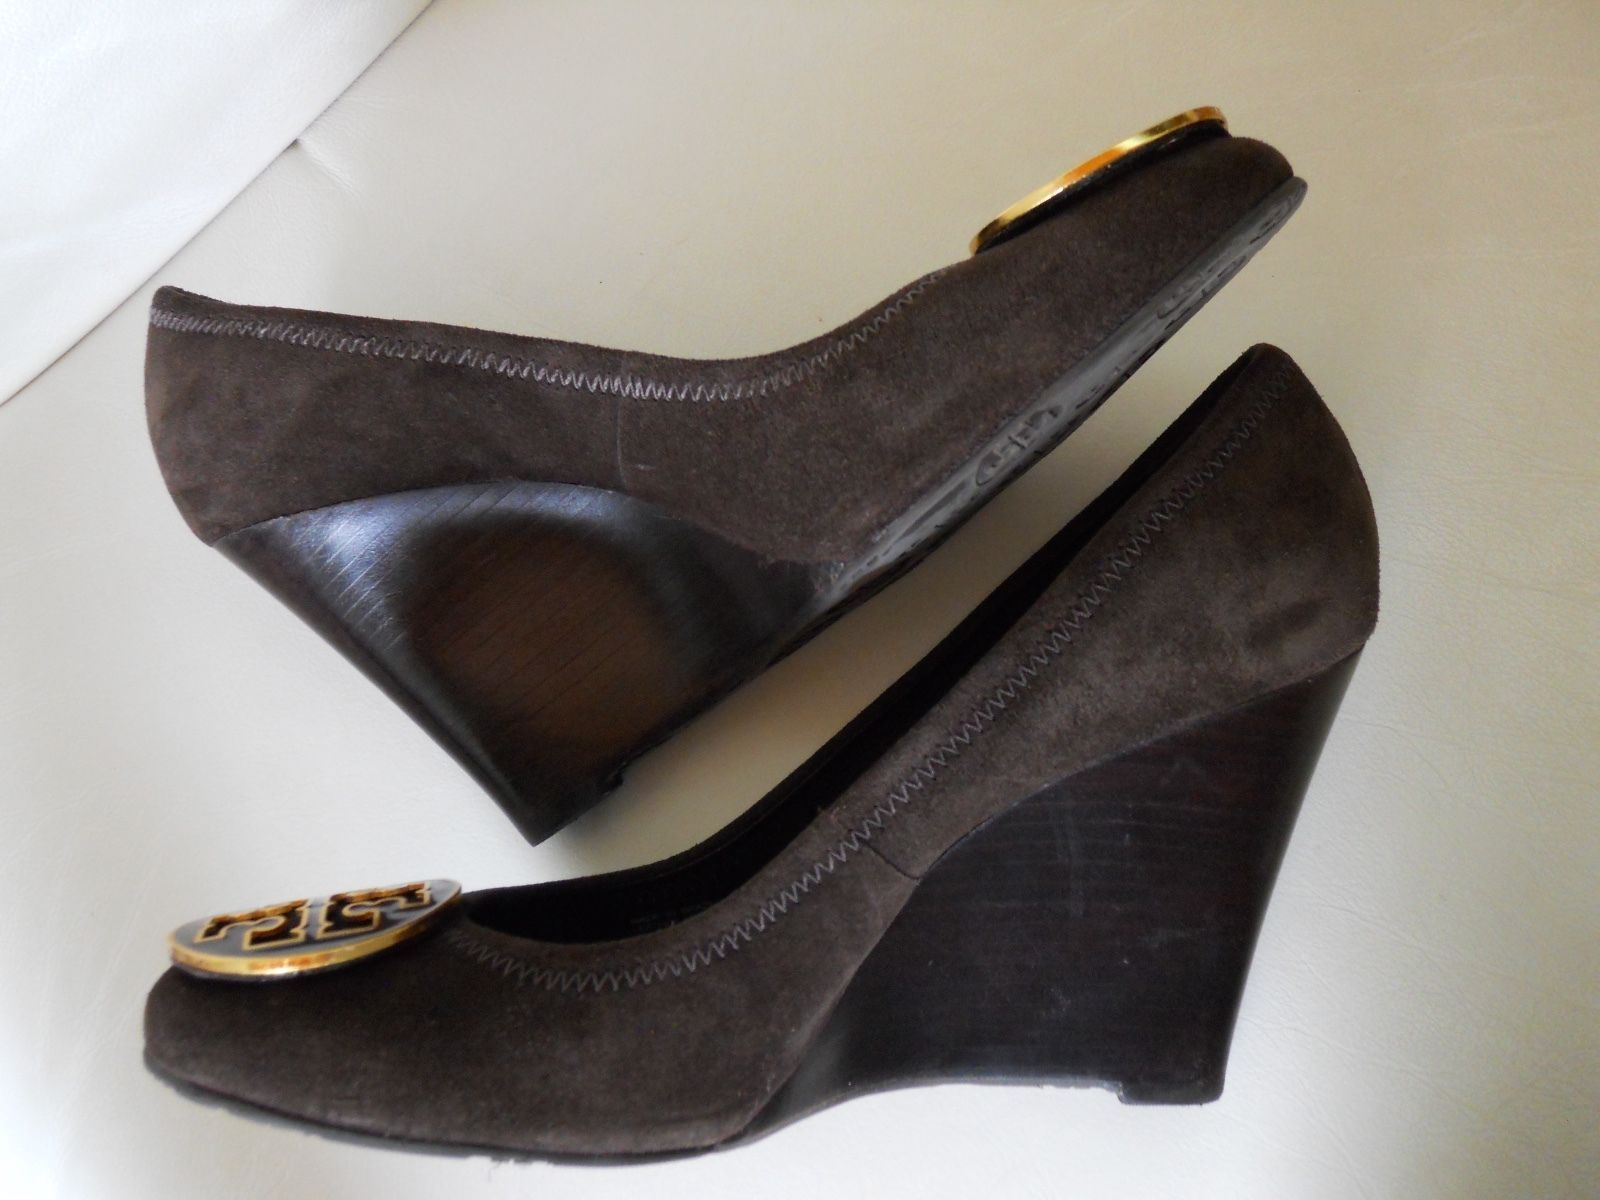 f1c4f09c591113 Tory Burch Sophie Wedge Heel Shoes Brown Suede Women s Sz.9.5 ...